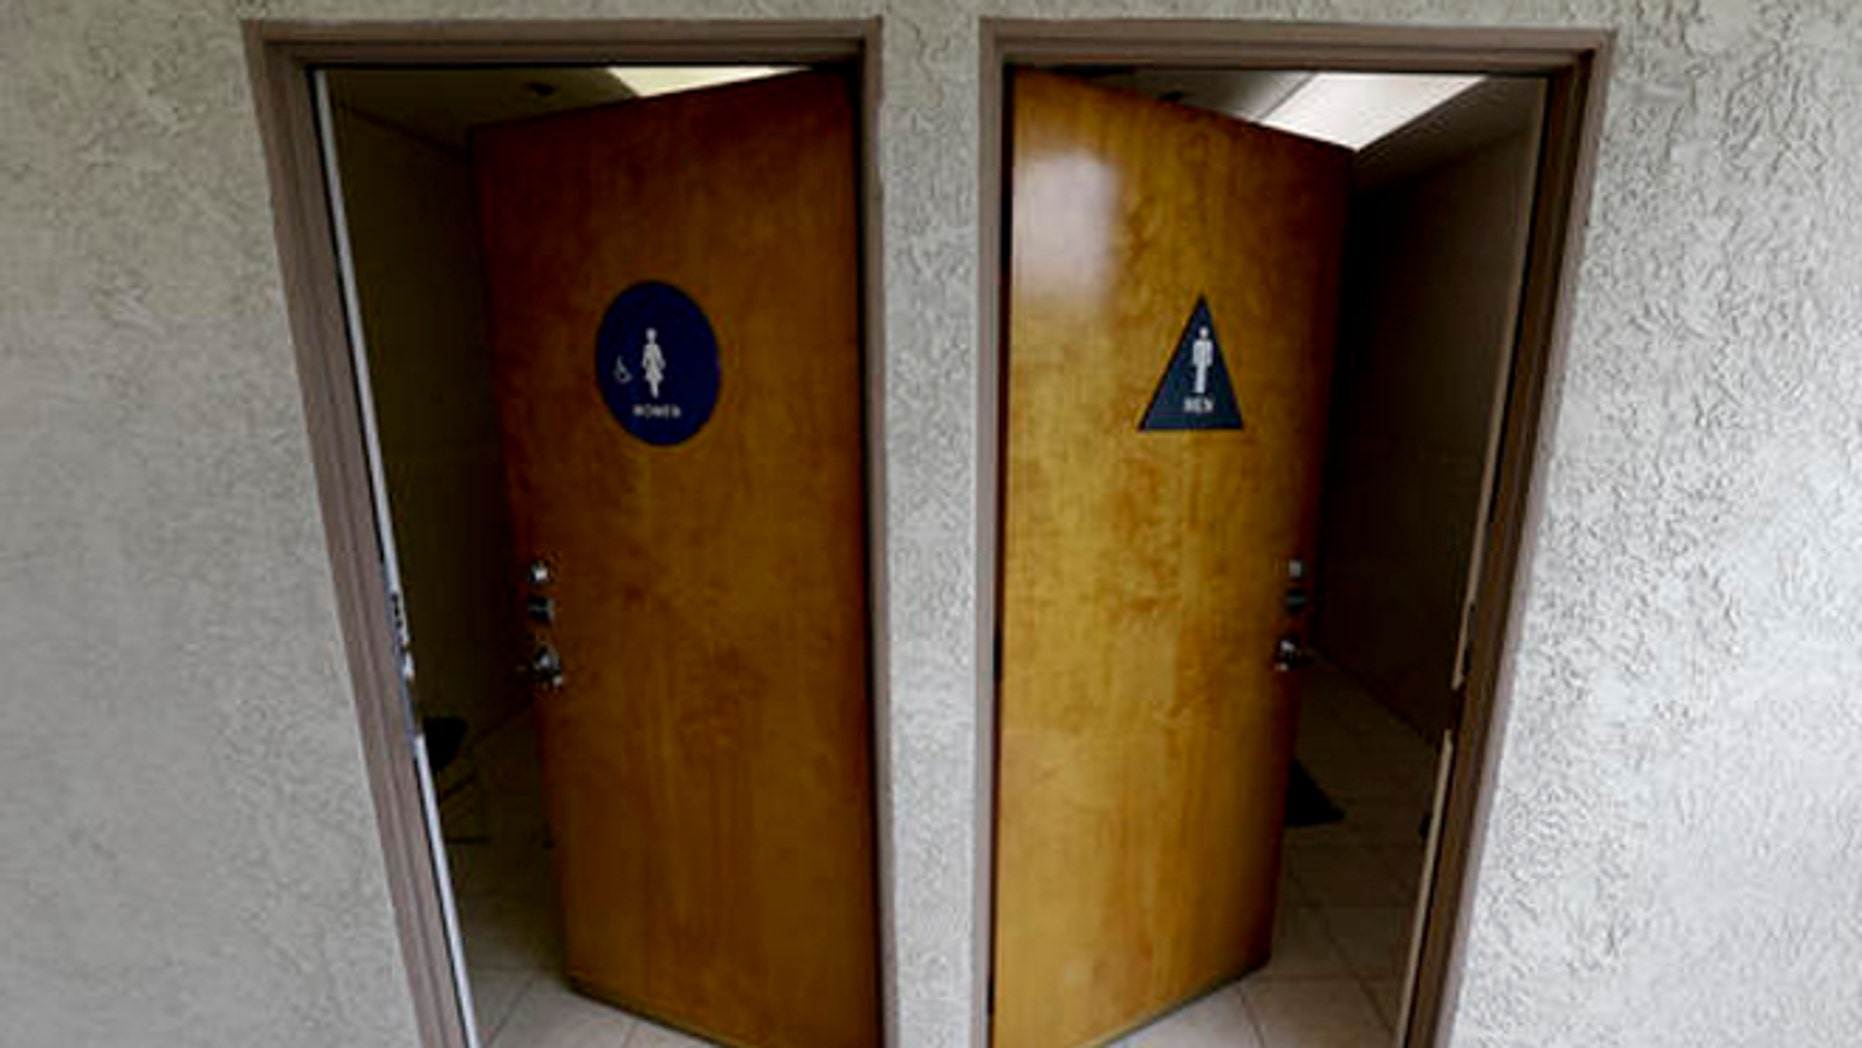 The doors to public restrooms are propped open at a office complex on Monday, May 9, 2016 in Anaheim, Calif.